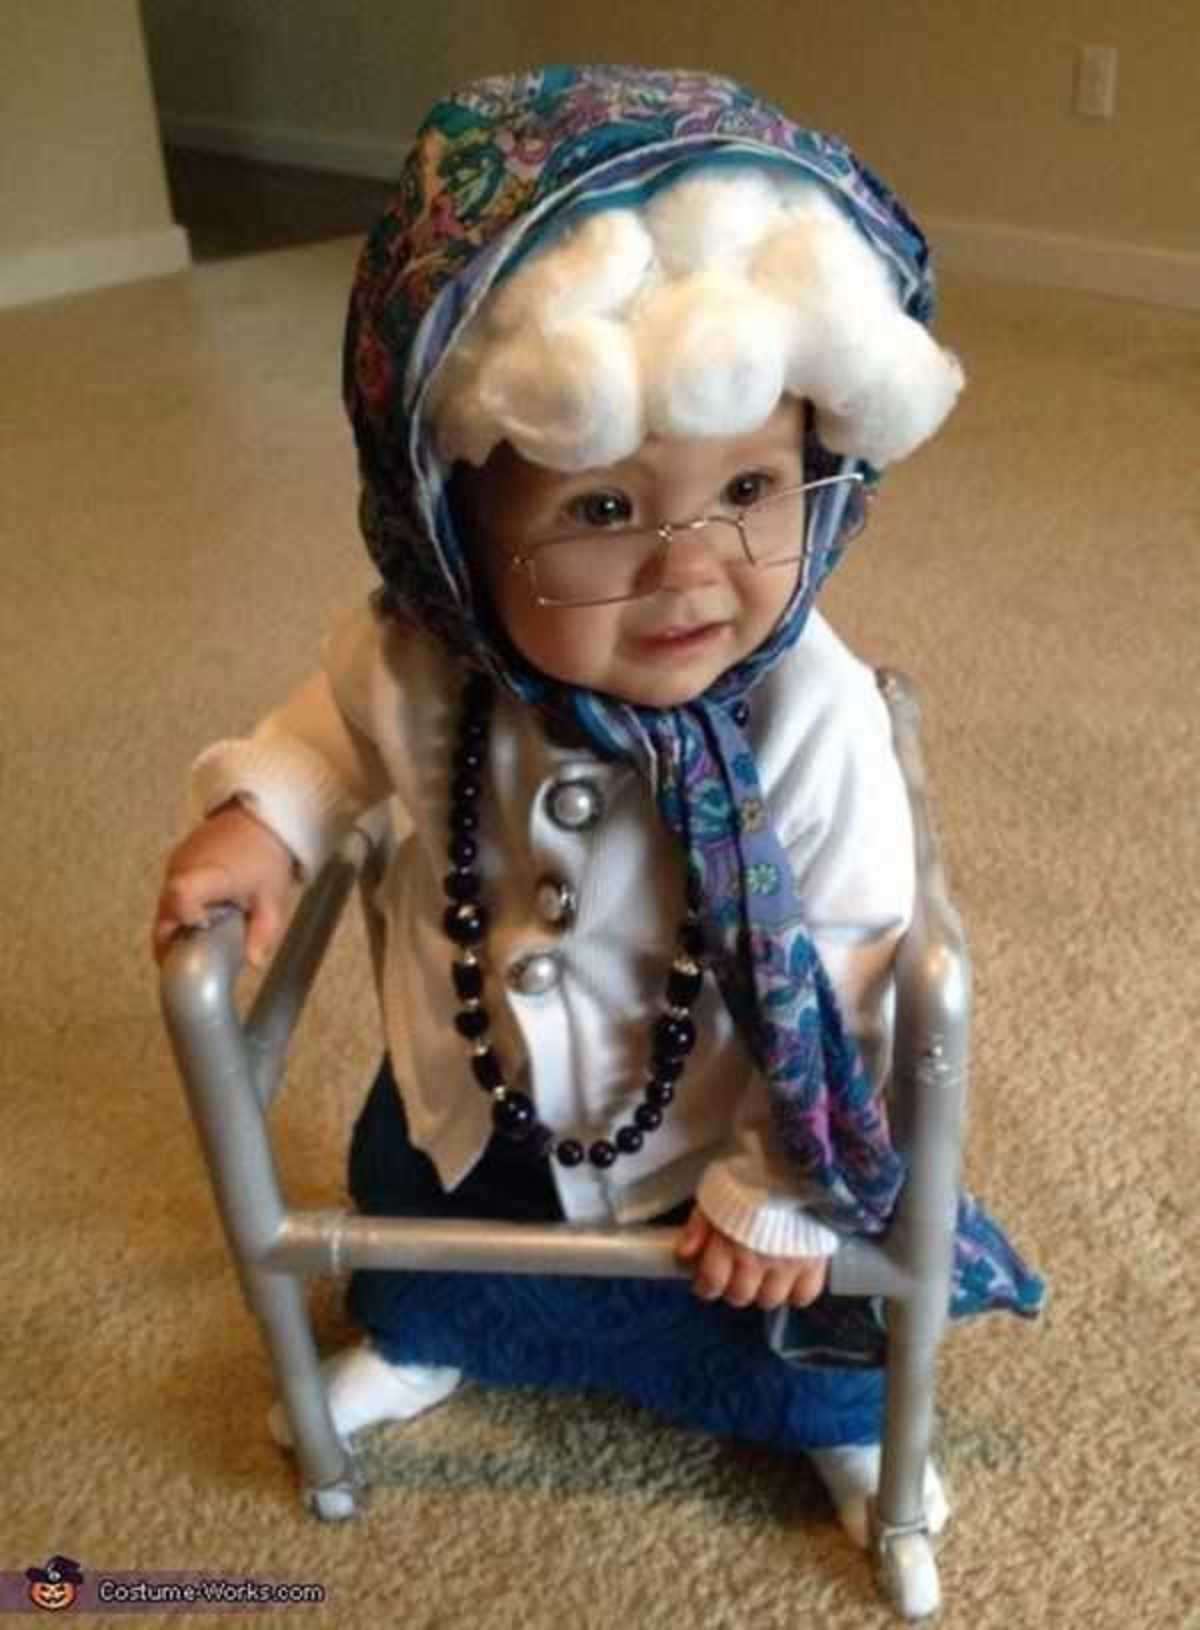 Babysit. .. Sure when babies dress up as old people its cute but when old men dress up in diapers its creepy #doublestandards